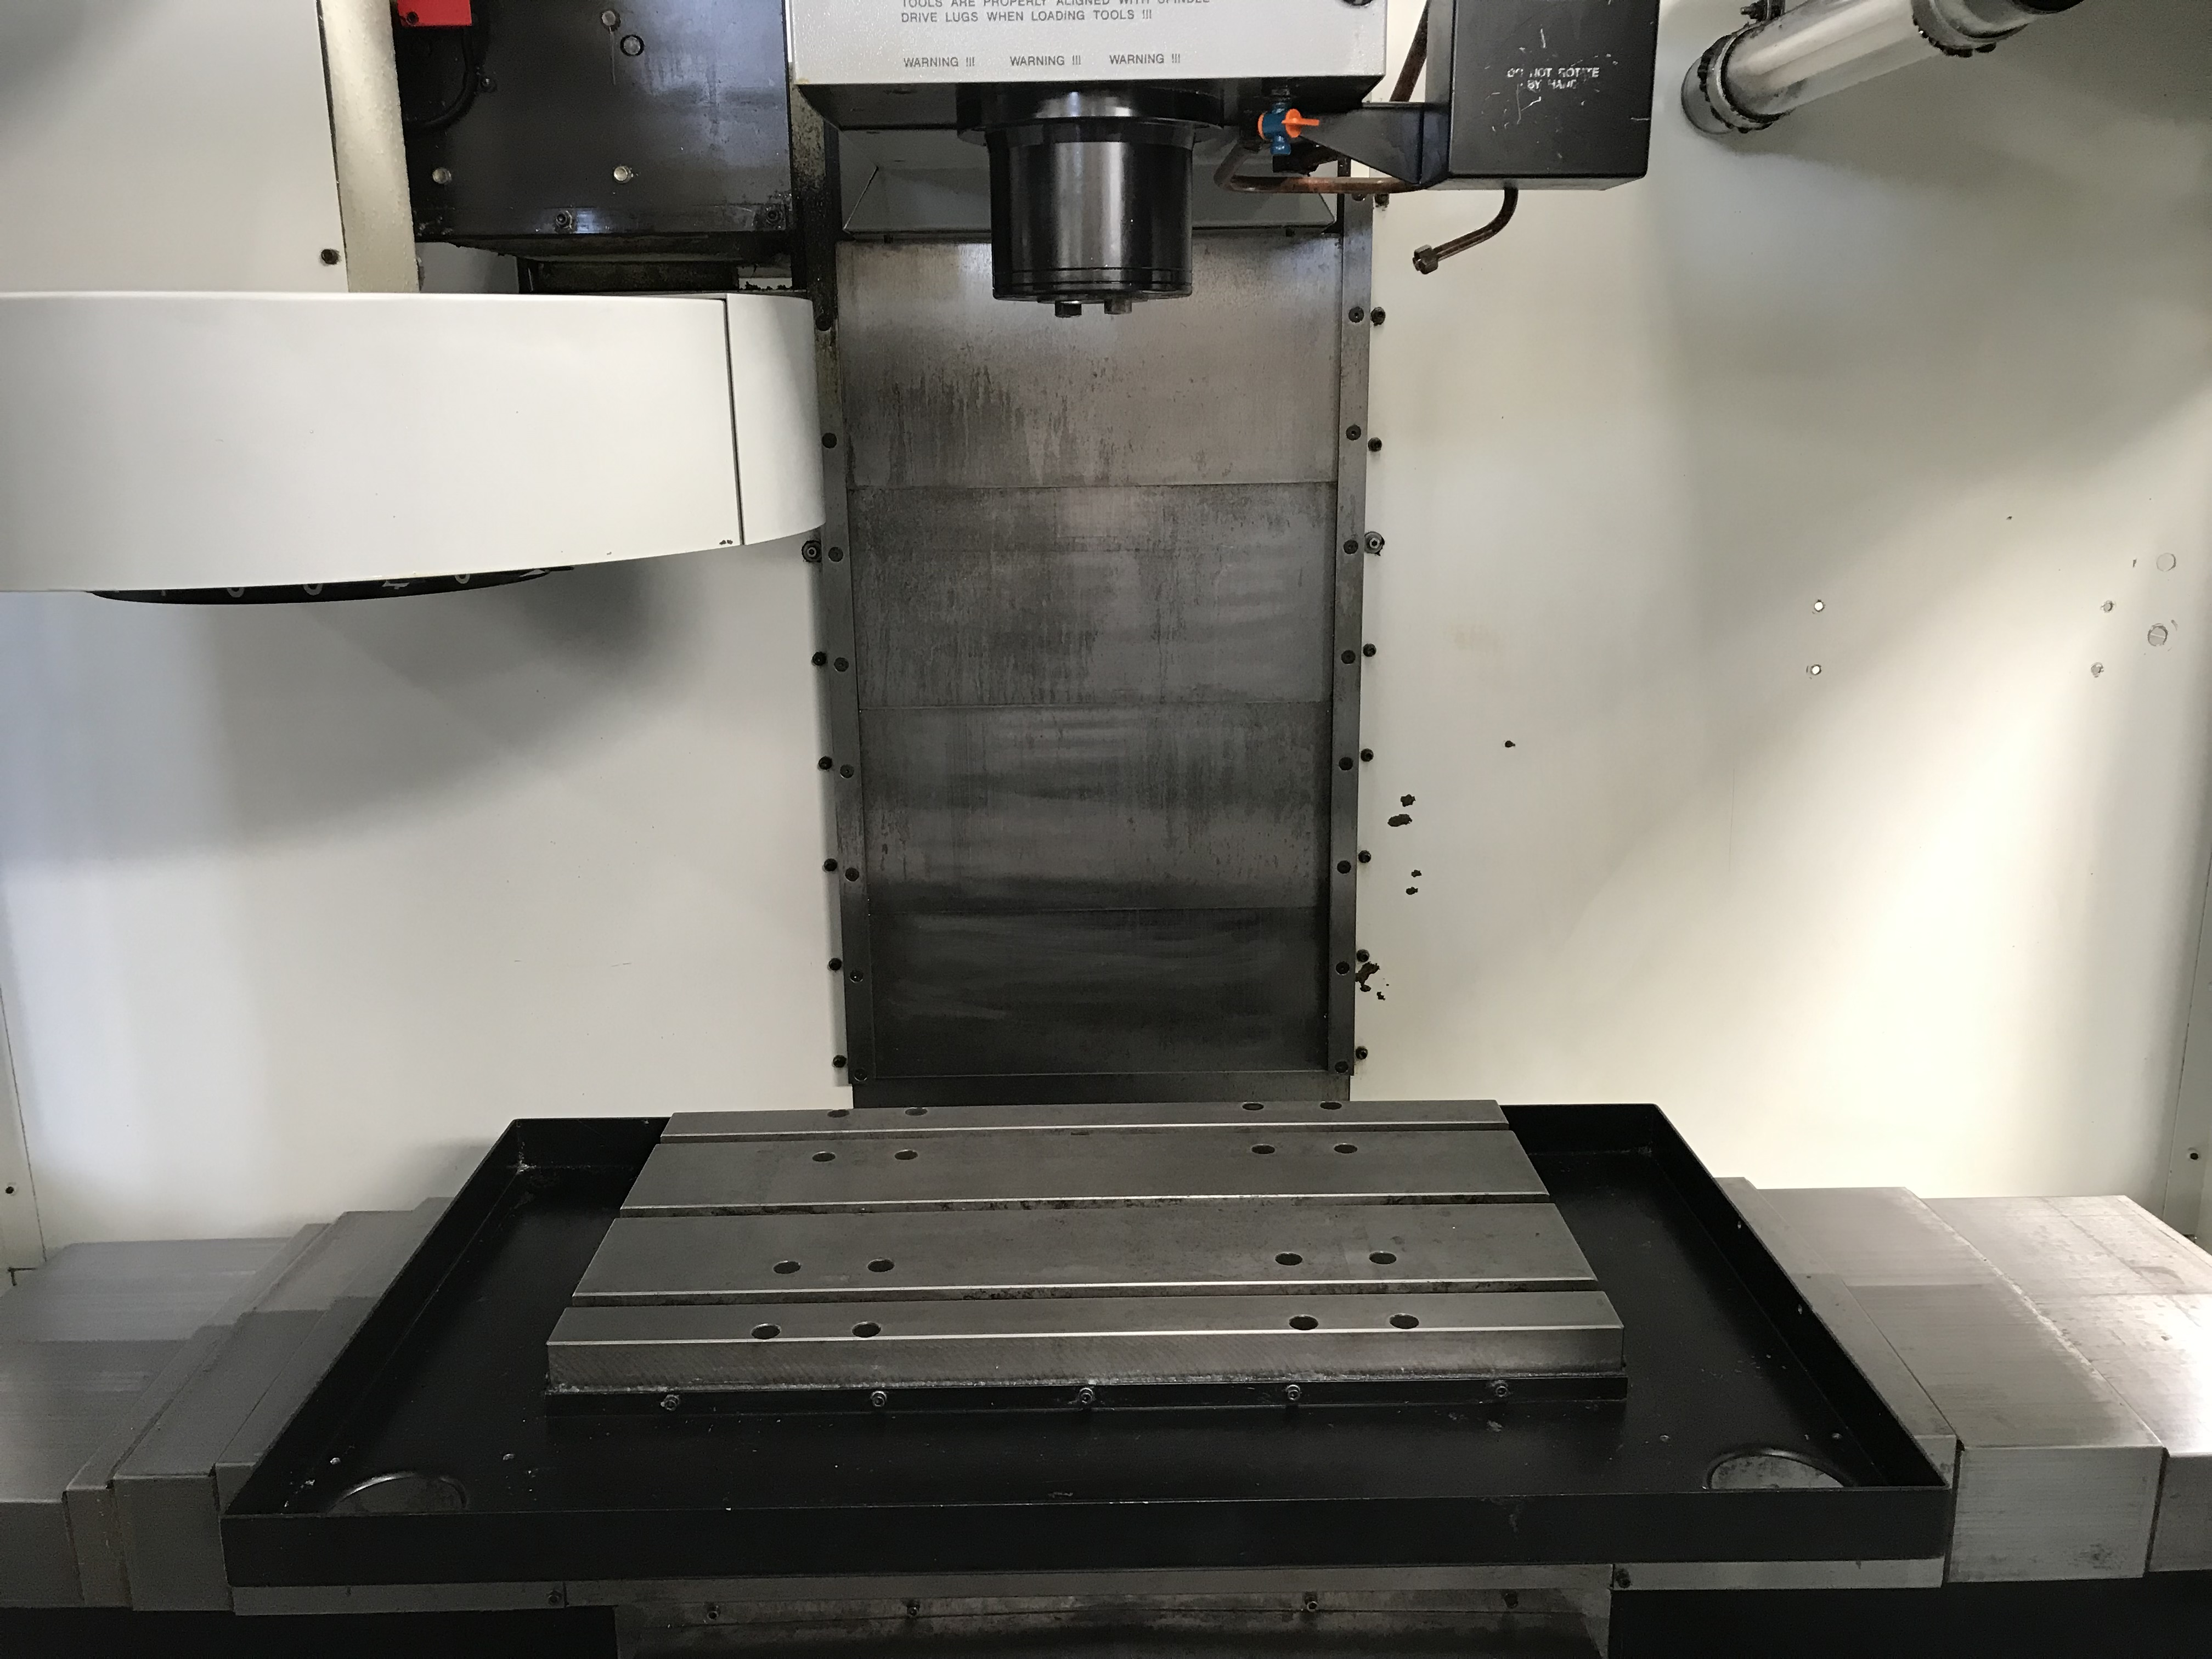 """Haas VF-0 VMC 1996, with: 20""""x16""""x20"""" Travels, CT40 Taper, Brushless Servo, Chip Auger, and Coolant Tank."""